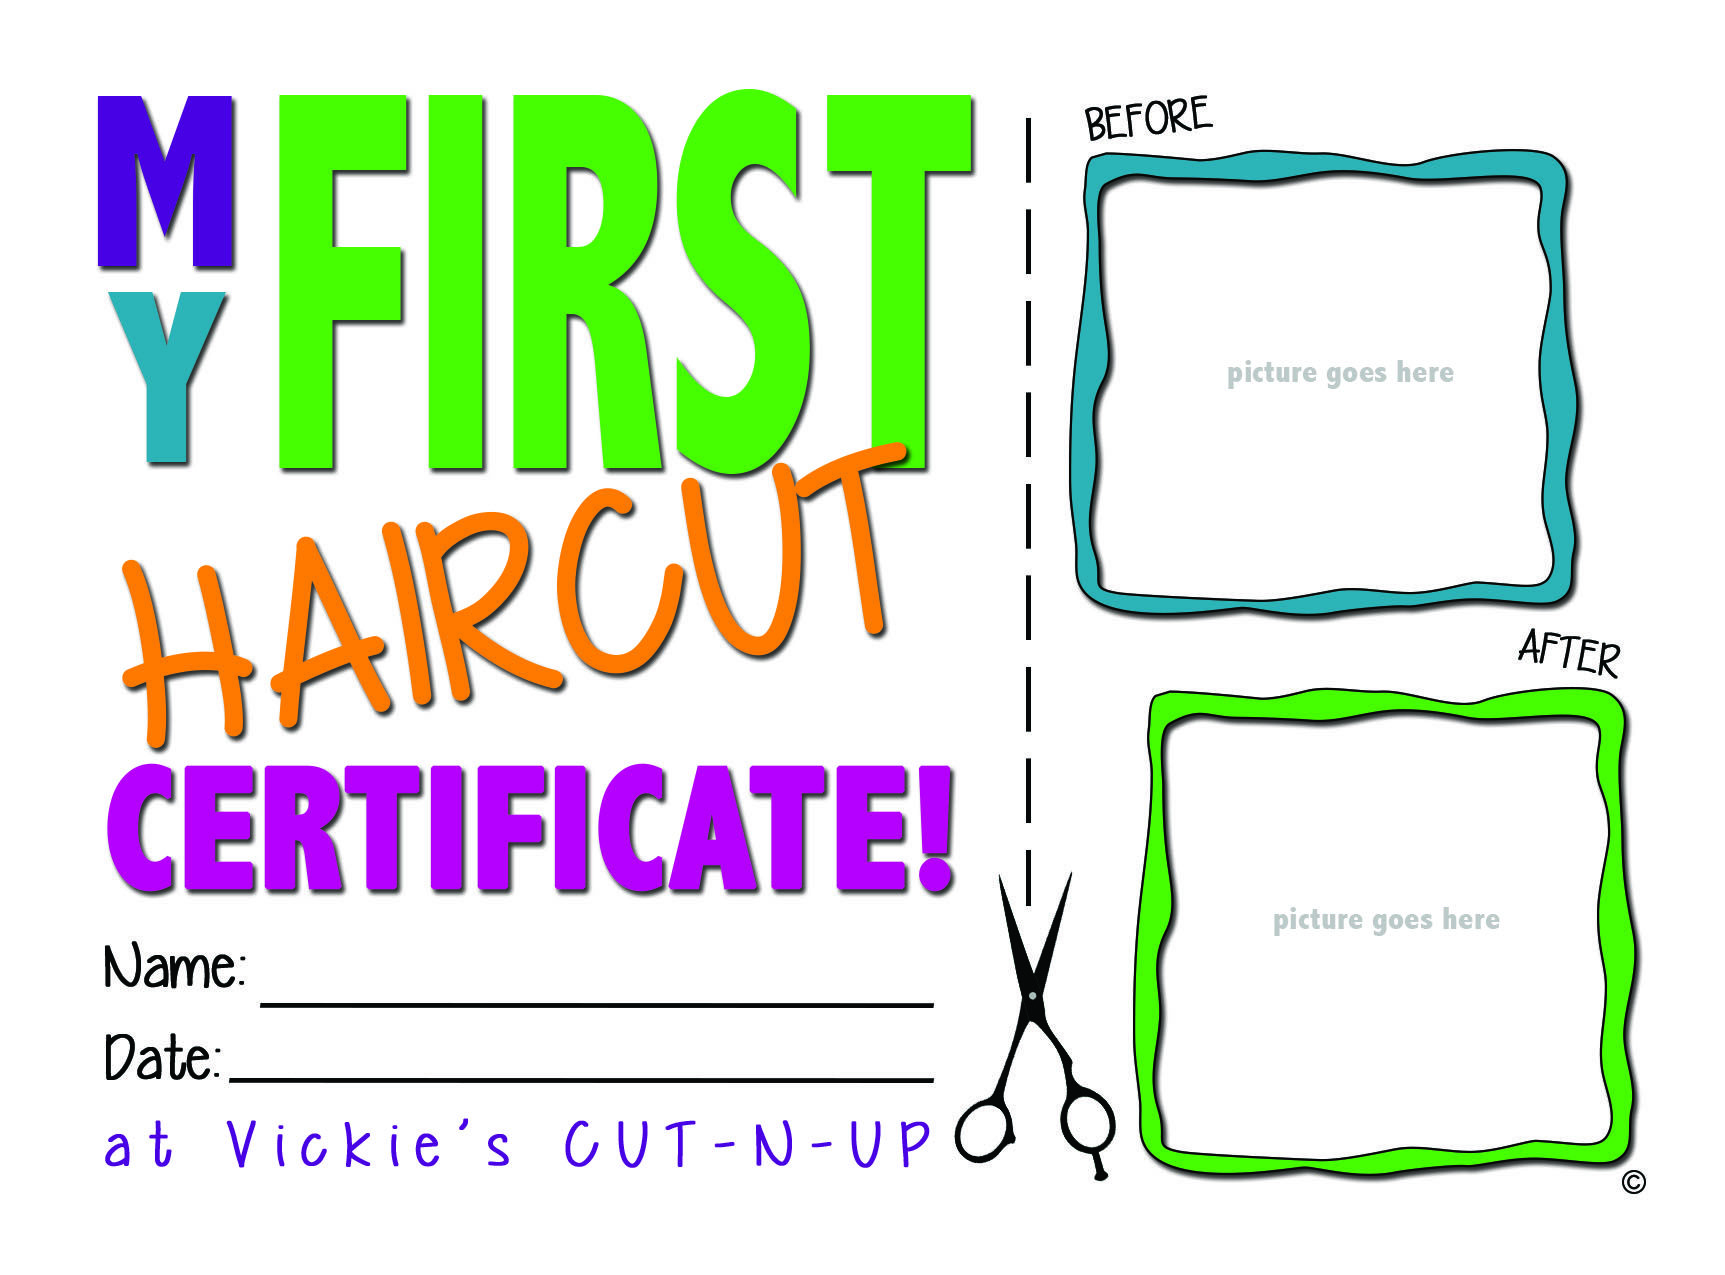 babys first haircut certificate 25 fuhrmannmedia babysfirsthaircut wwwfacebookcom